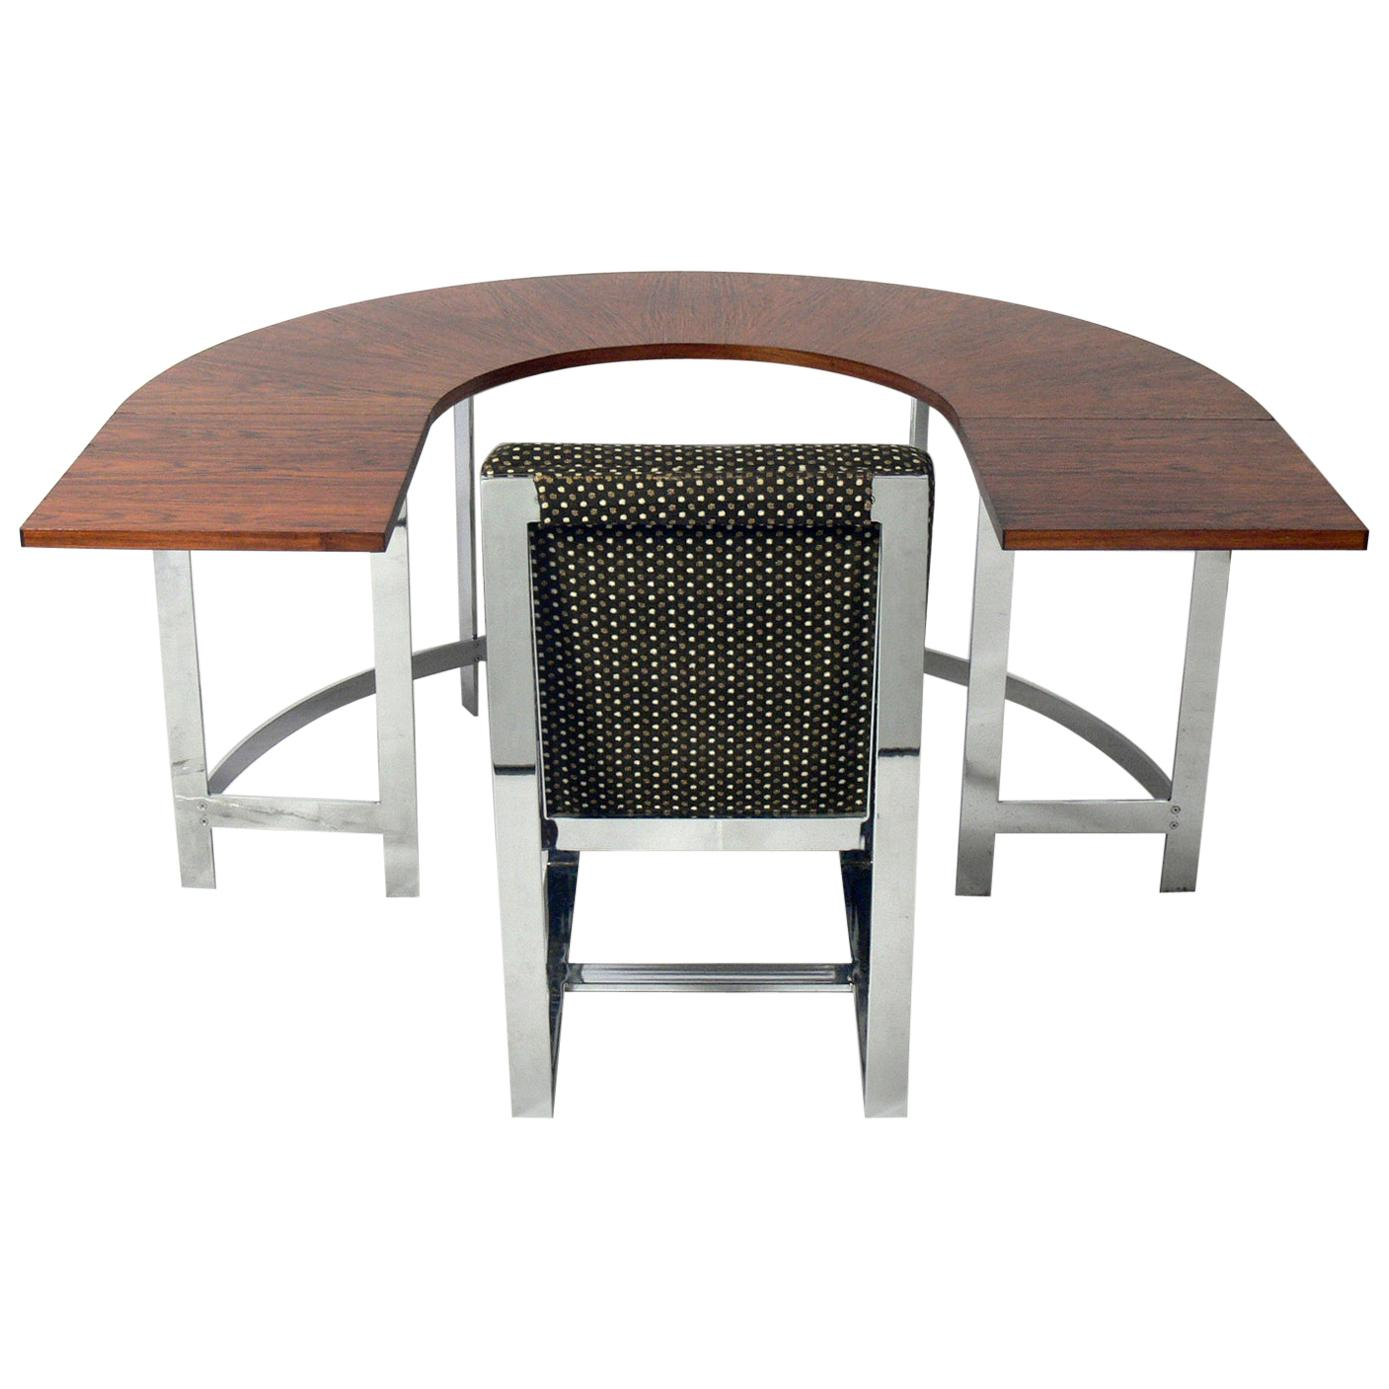 Rosewood & Chrome Arc Desk and Chair